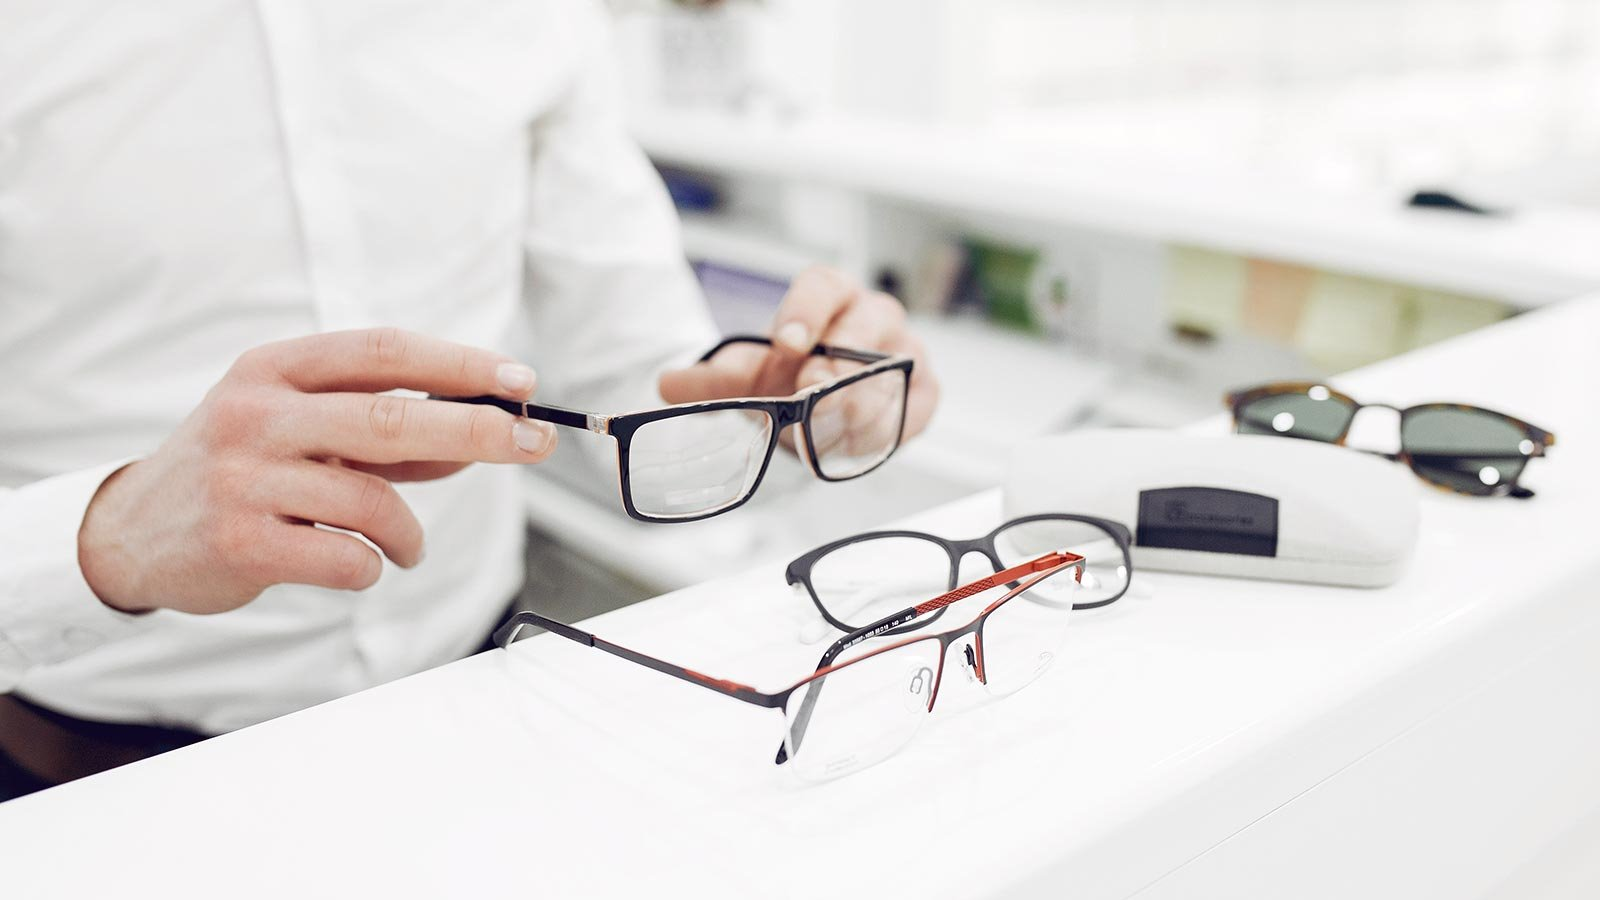 Optician - When to consult and educational background